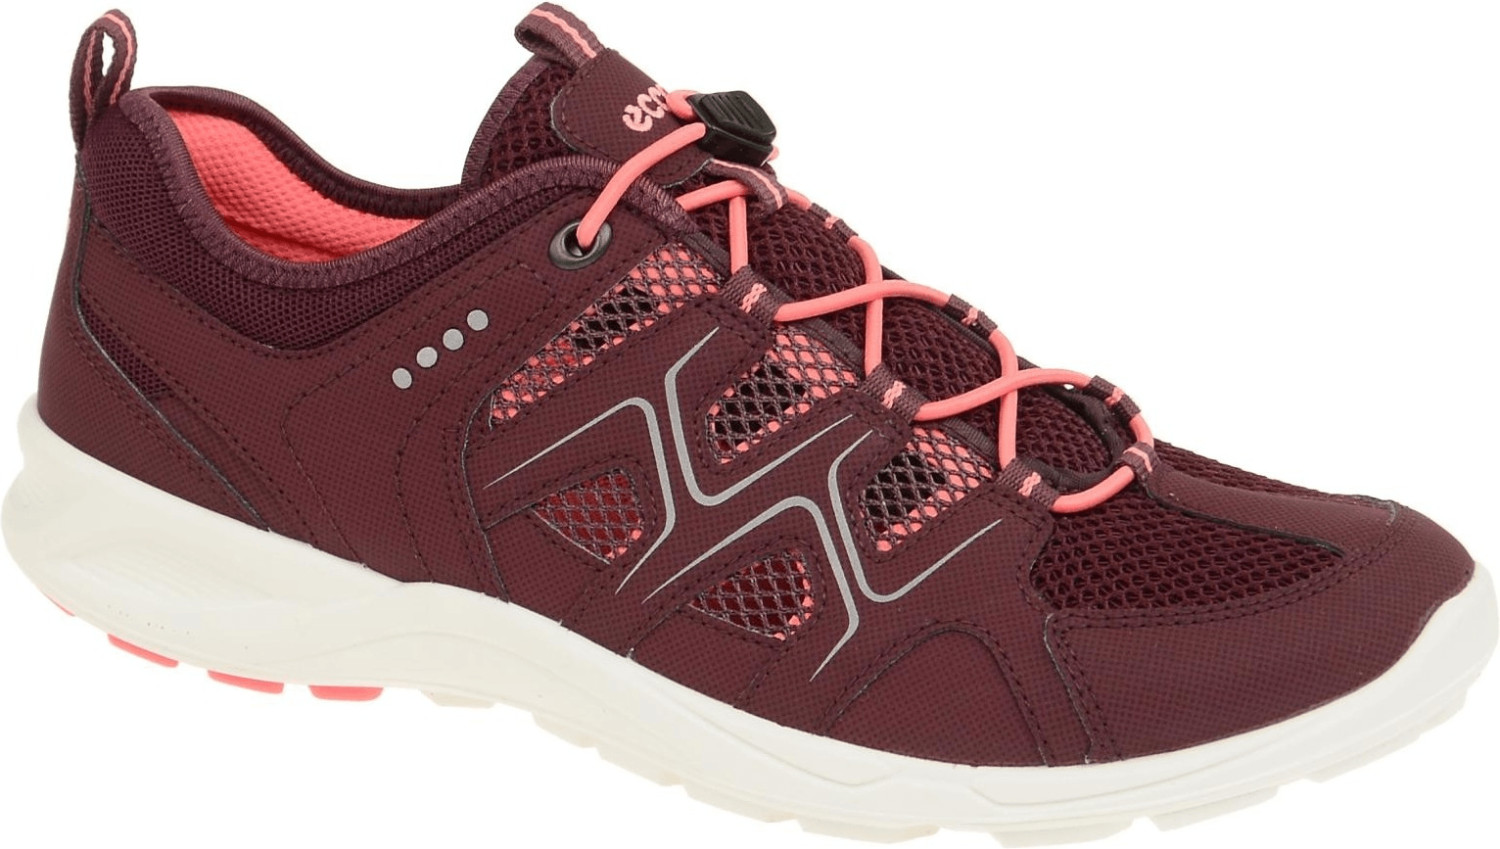 Ecco Terracruise Women (841113) bordeaux/bordeaux